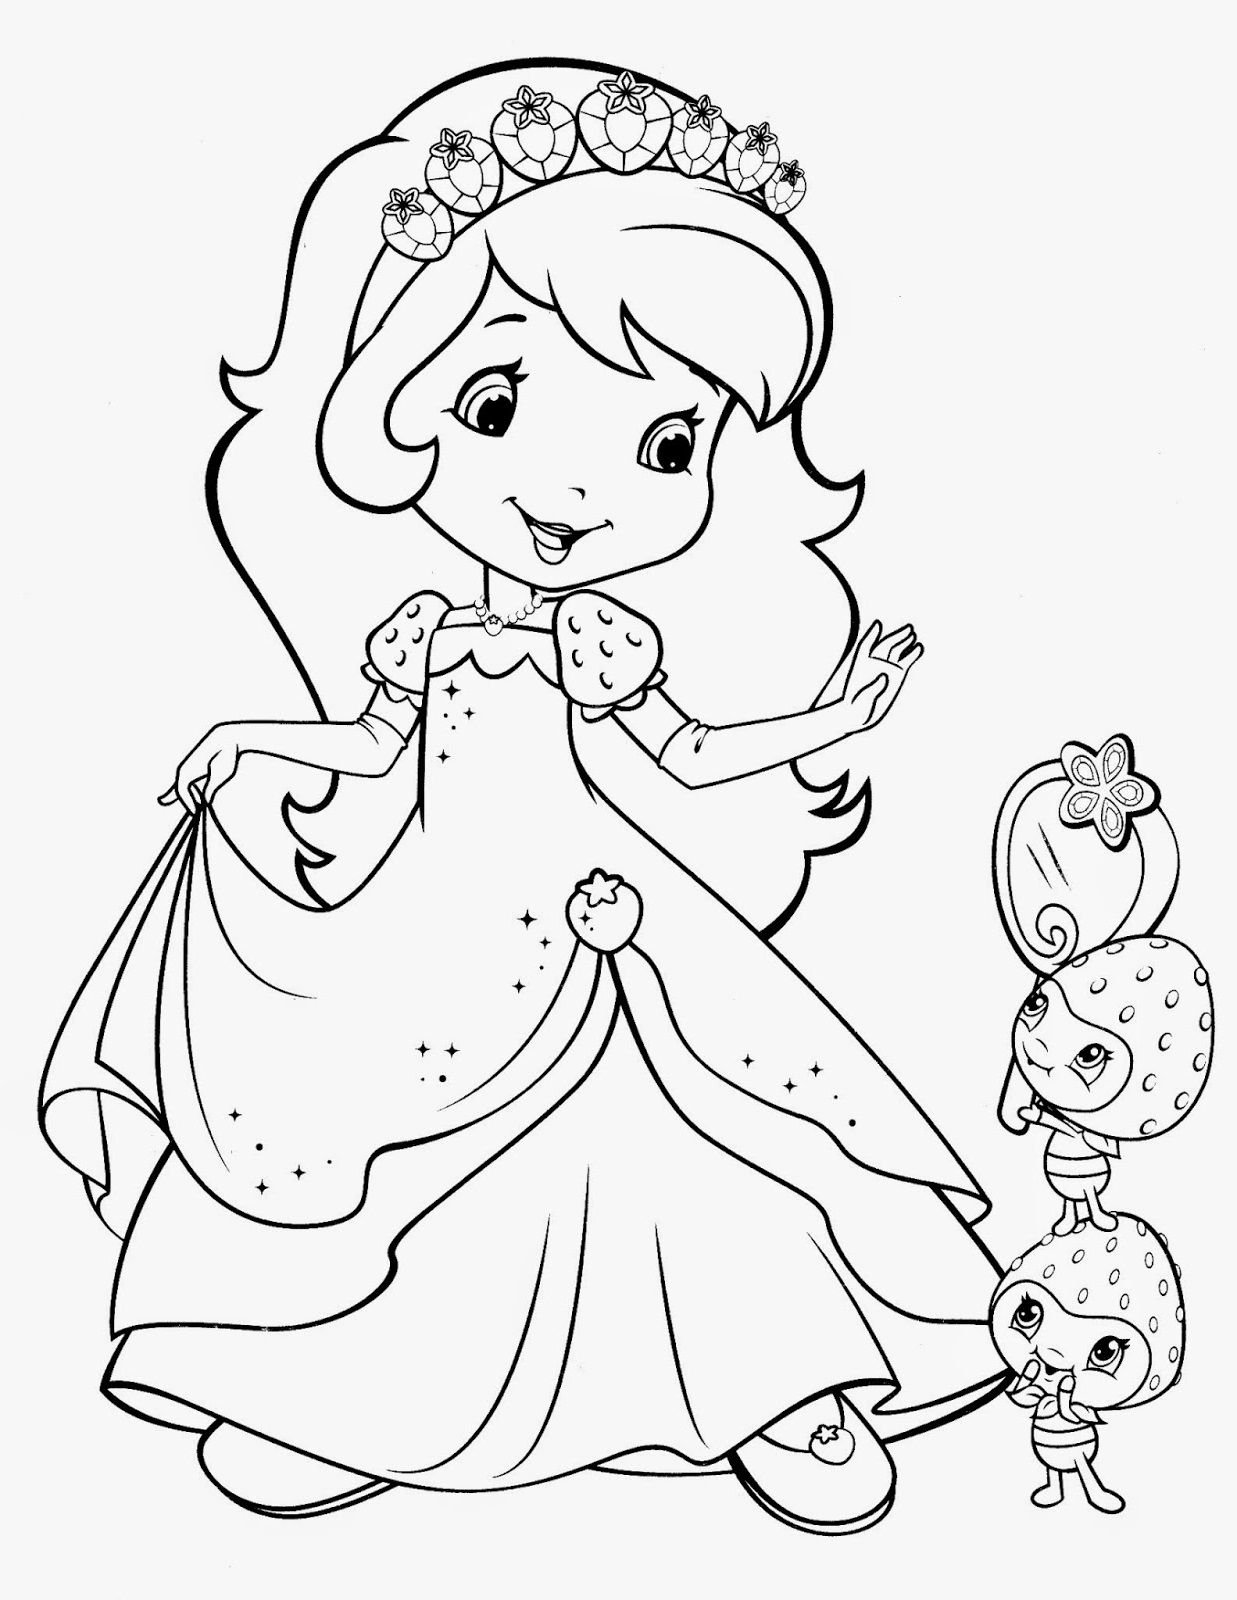 Strawberry Shortcake In Gown Coloring Pages 2019 Educative Printable Barbie Coloring Pages Strawberry Shortcake Coloring Pages Cartoon Coloring Pages